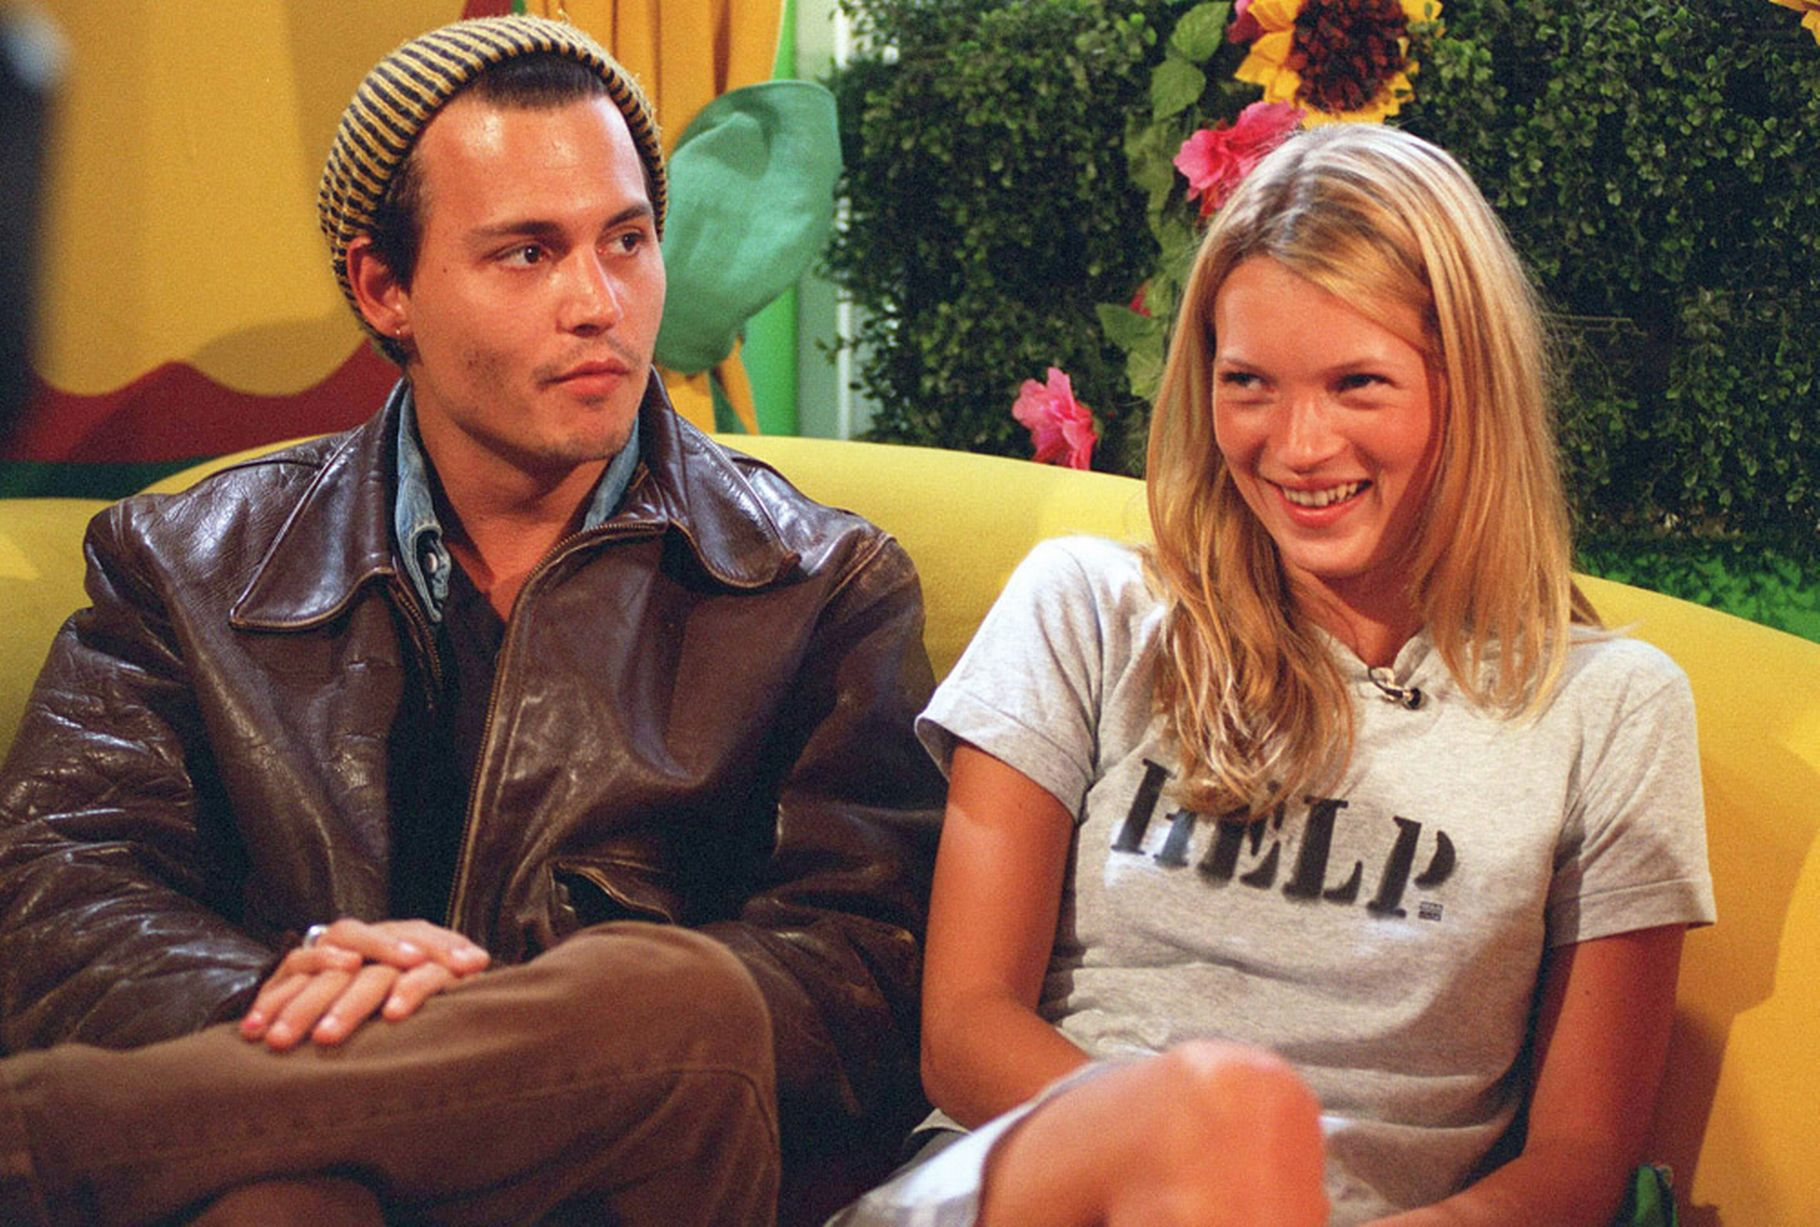 Johnny-Depp-and-Kate-Moss-on-The-Big-Breakfast-Channel-4-TV-in-London-1995